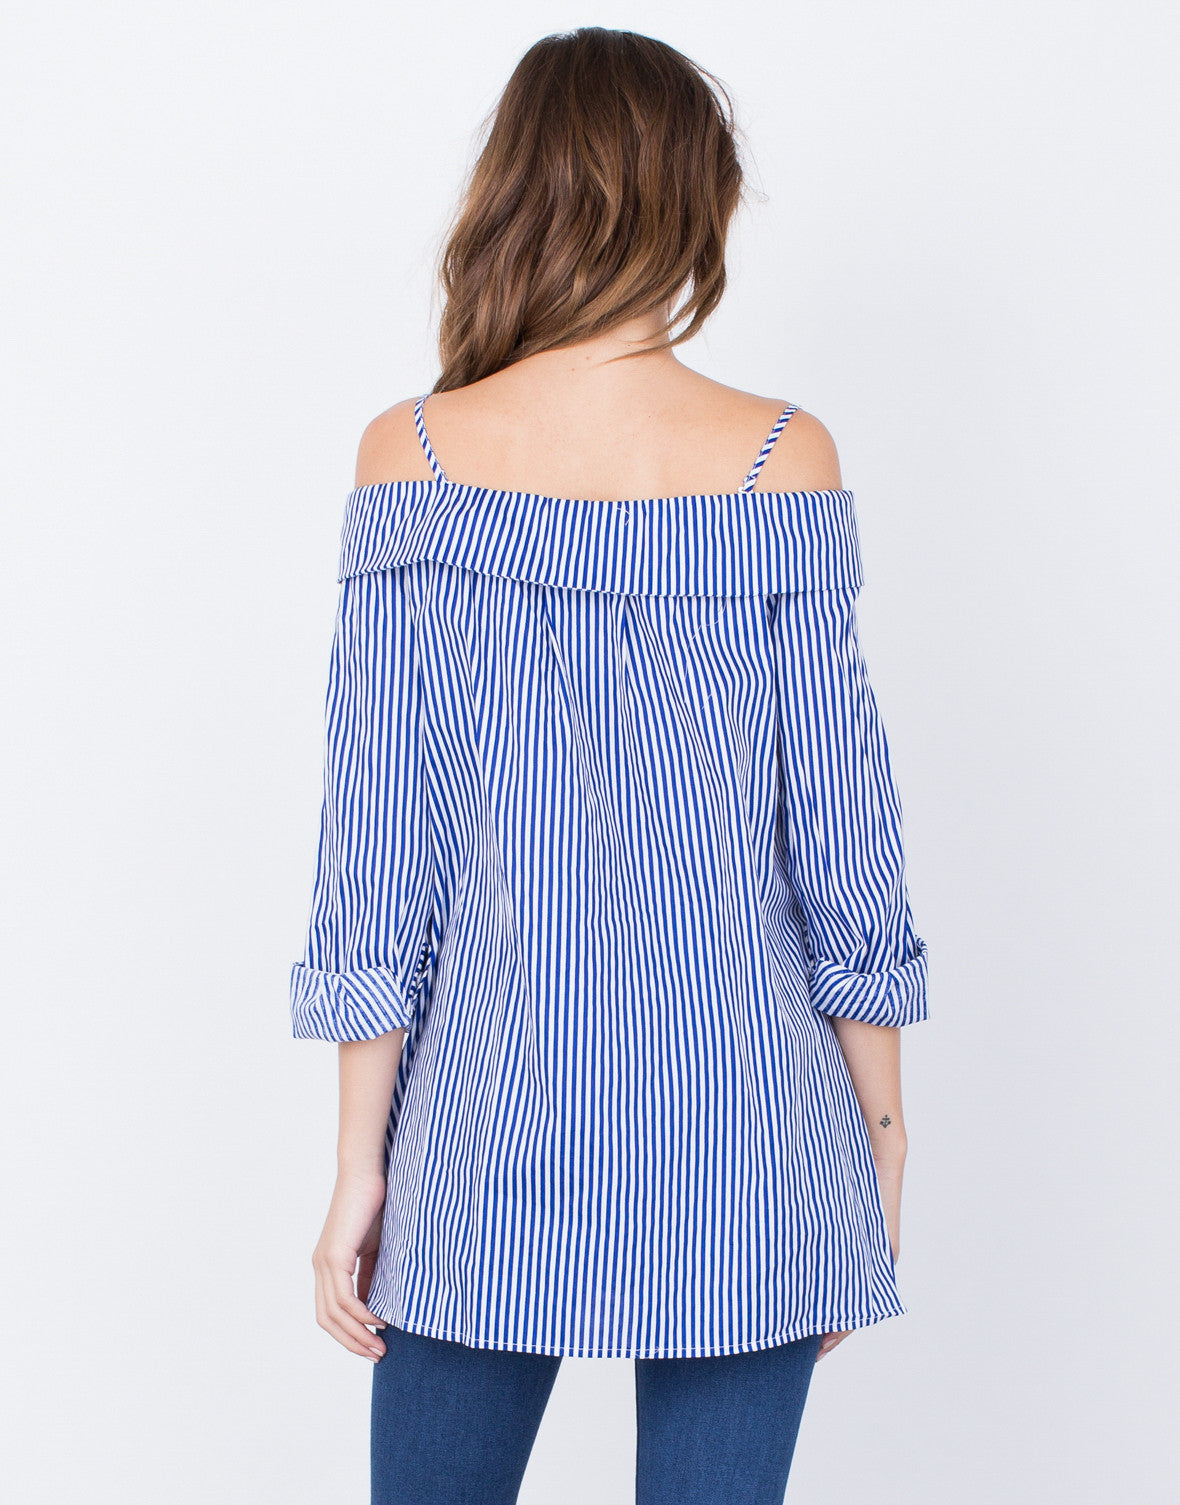 Back View of Nautical Cold Shoulder Top